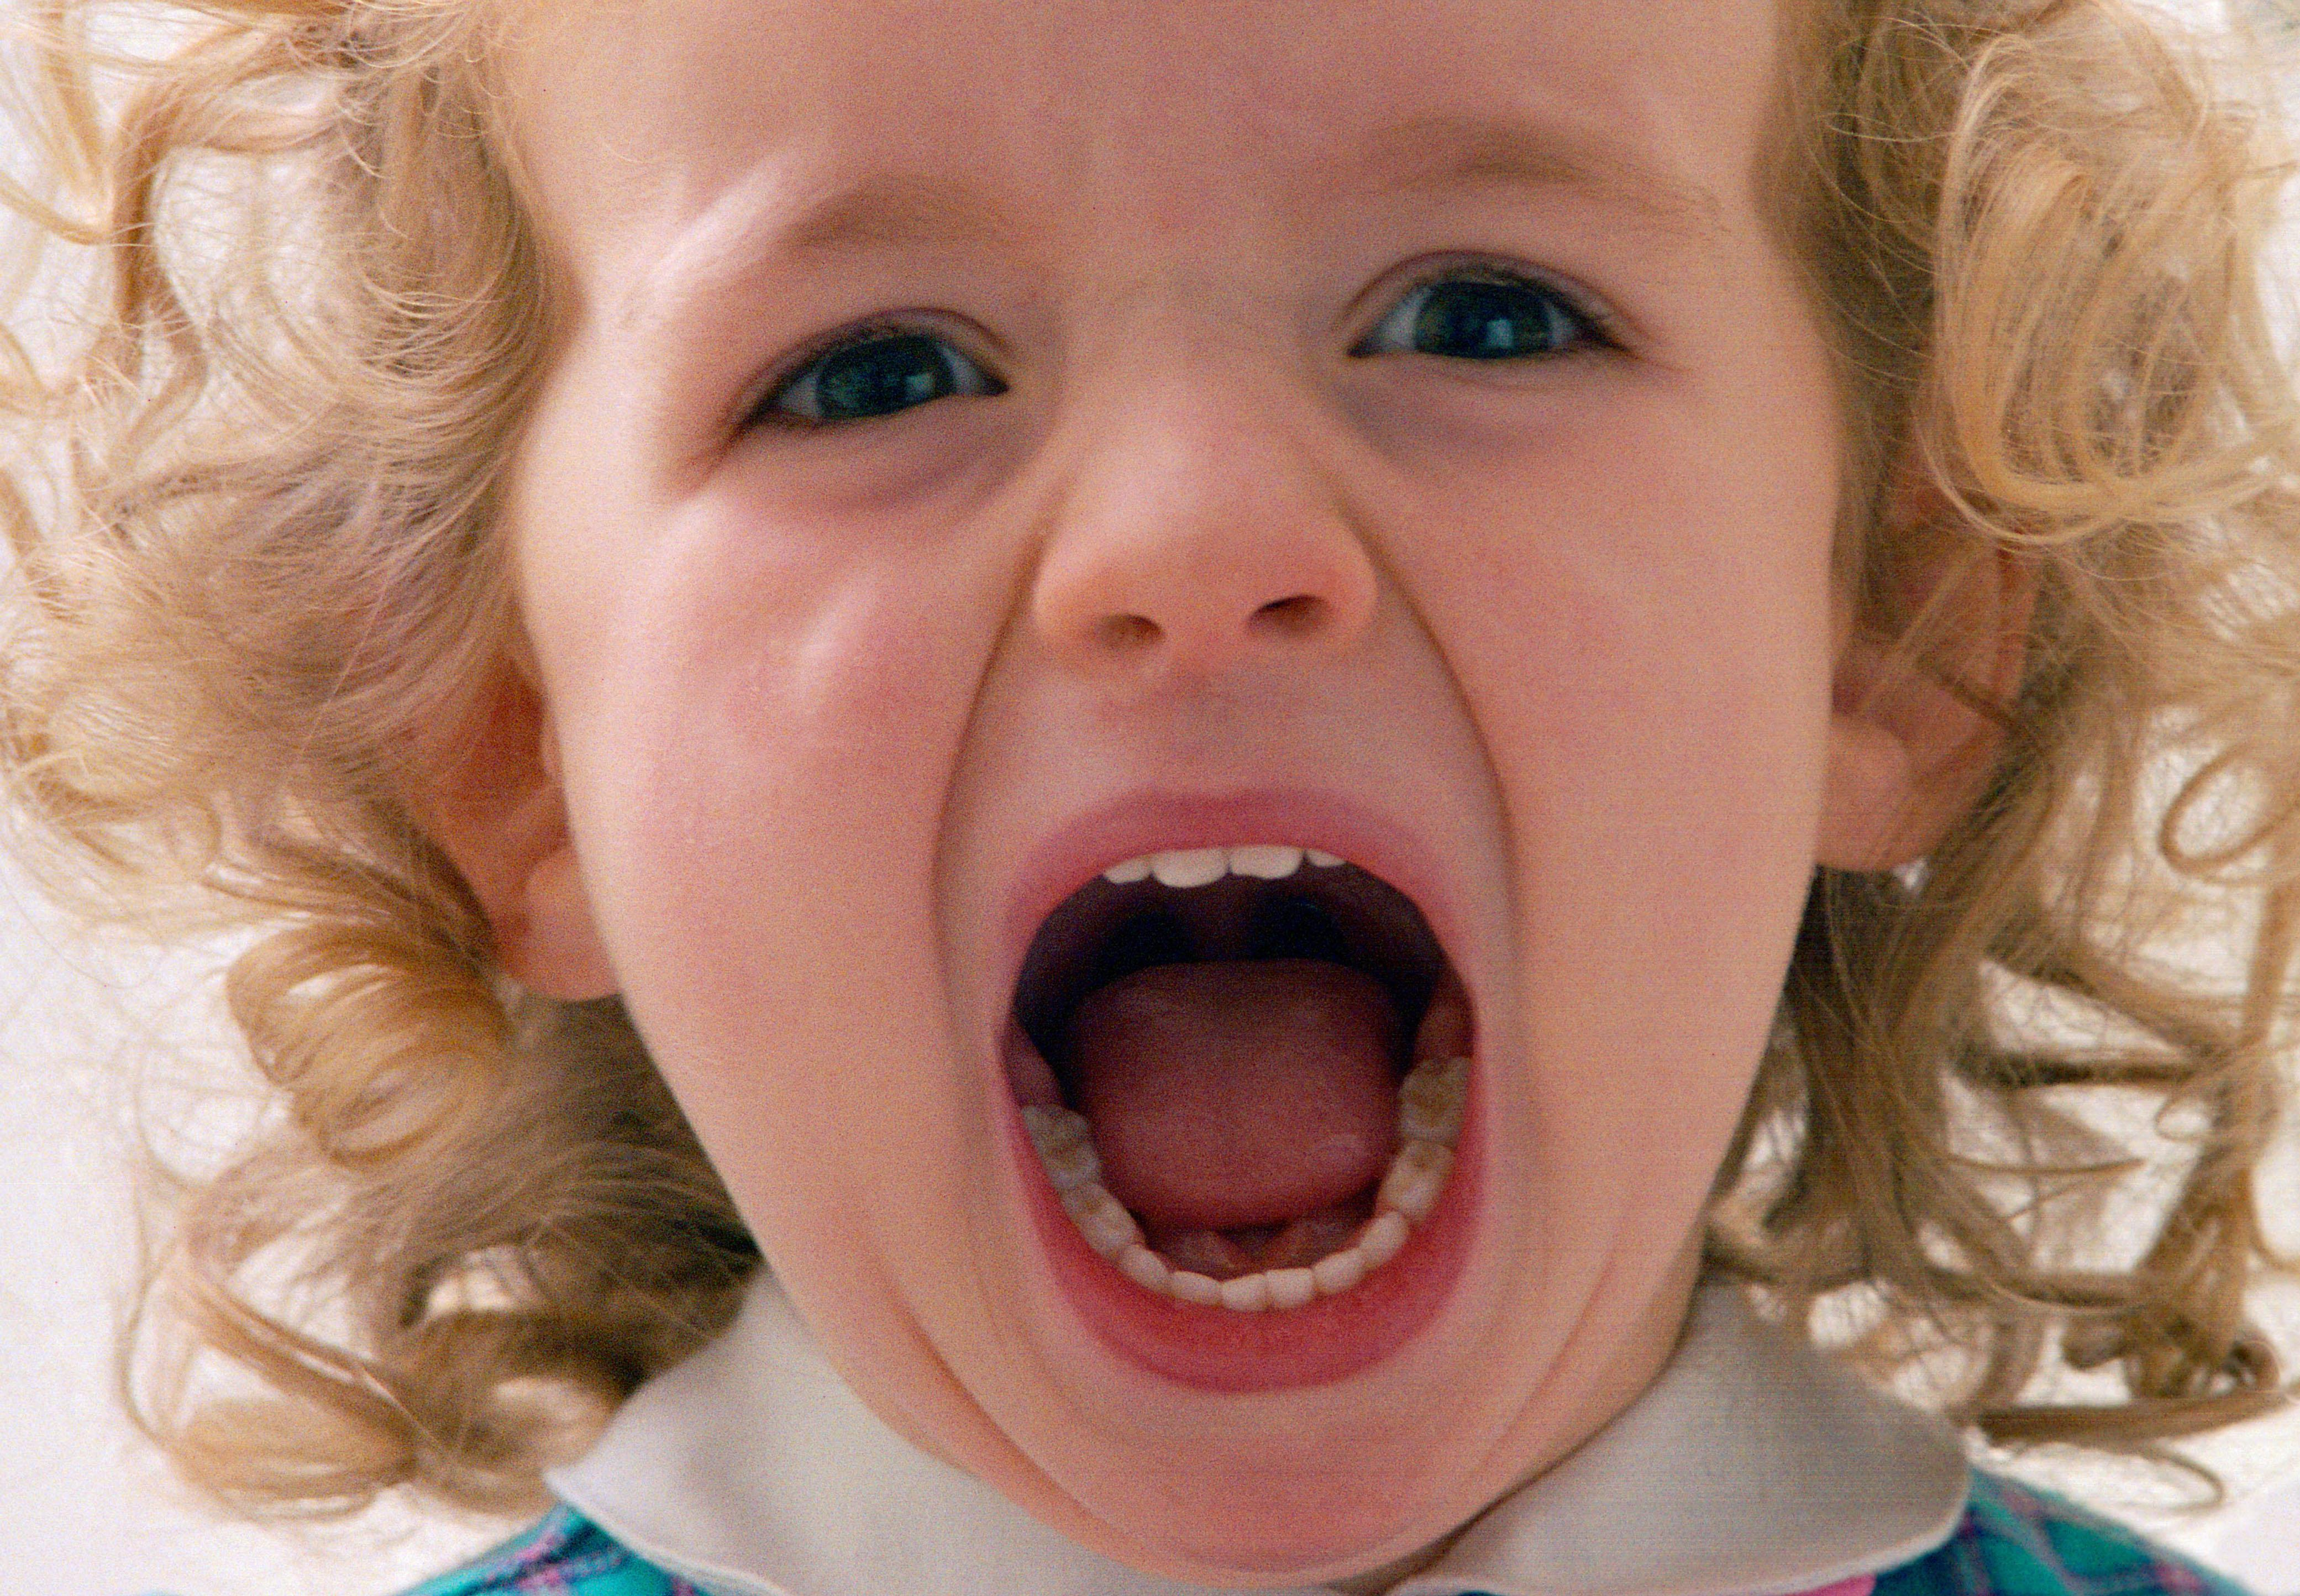 A two year old girl shouting